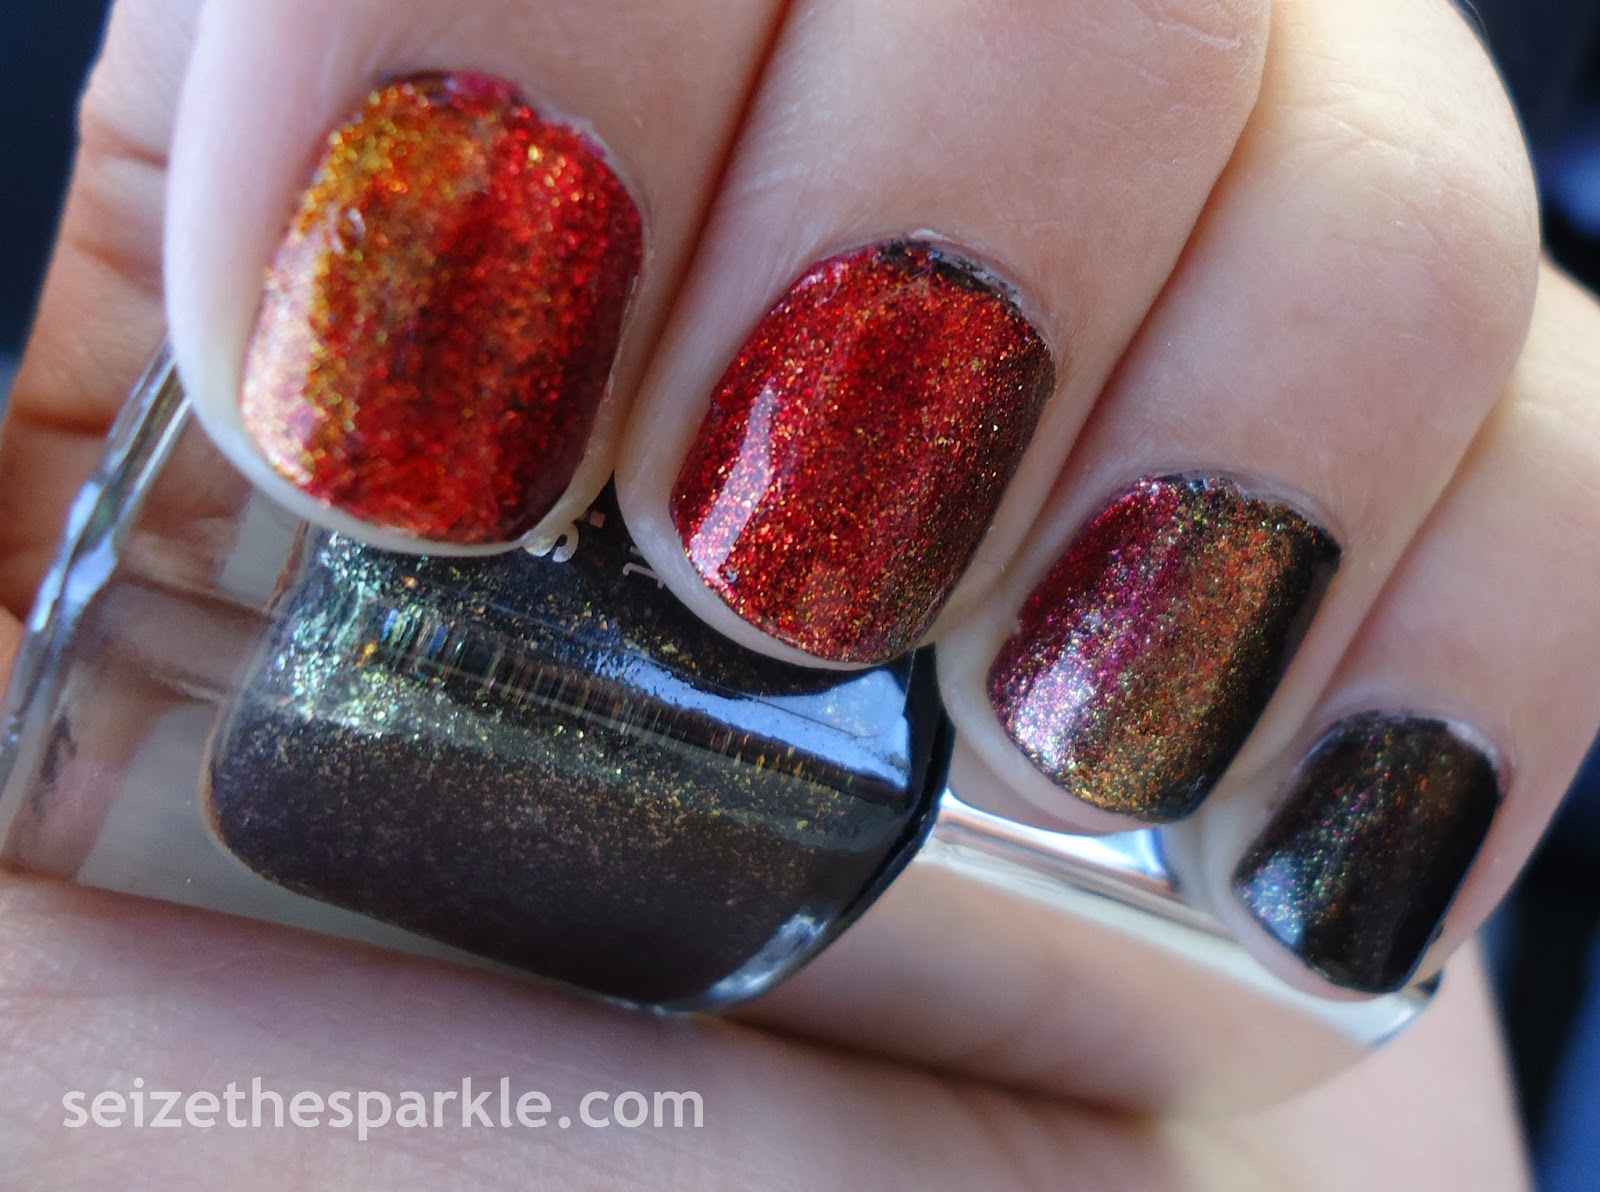 CoverGirl Catching Fire Manicure